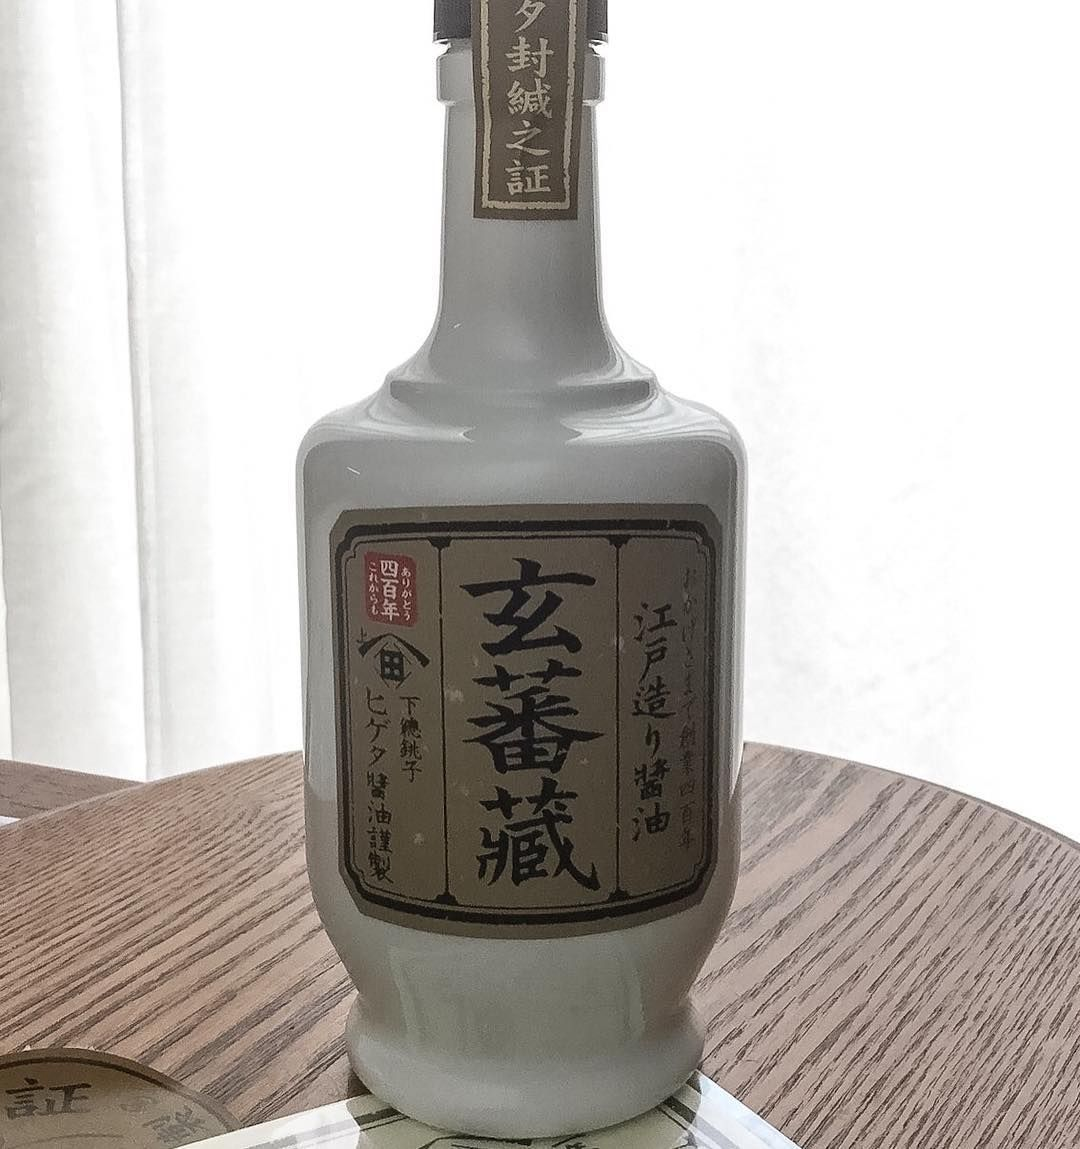 "Rare sake? No! Using traditional method locally brewed soy sauce ""Gebagura"" by Higeta Soy sauce company #Choshi #wowchoshi #soysauce #japanesecuisine #japanesefood #japanesecooking"